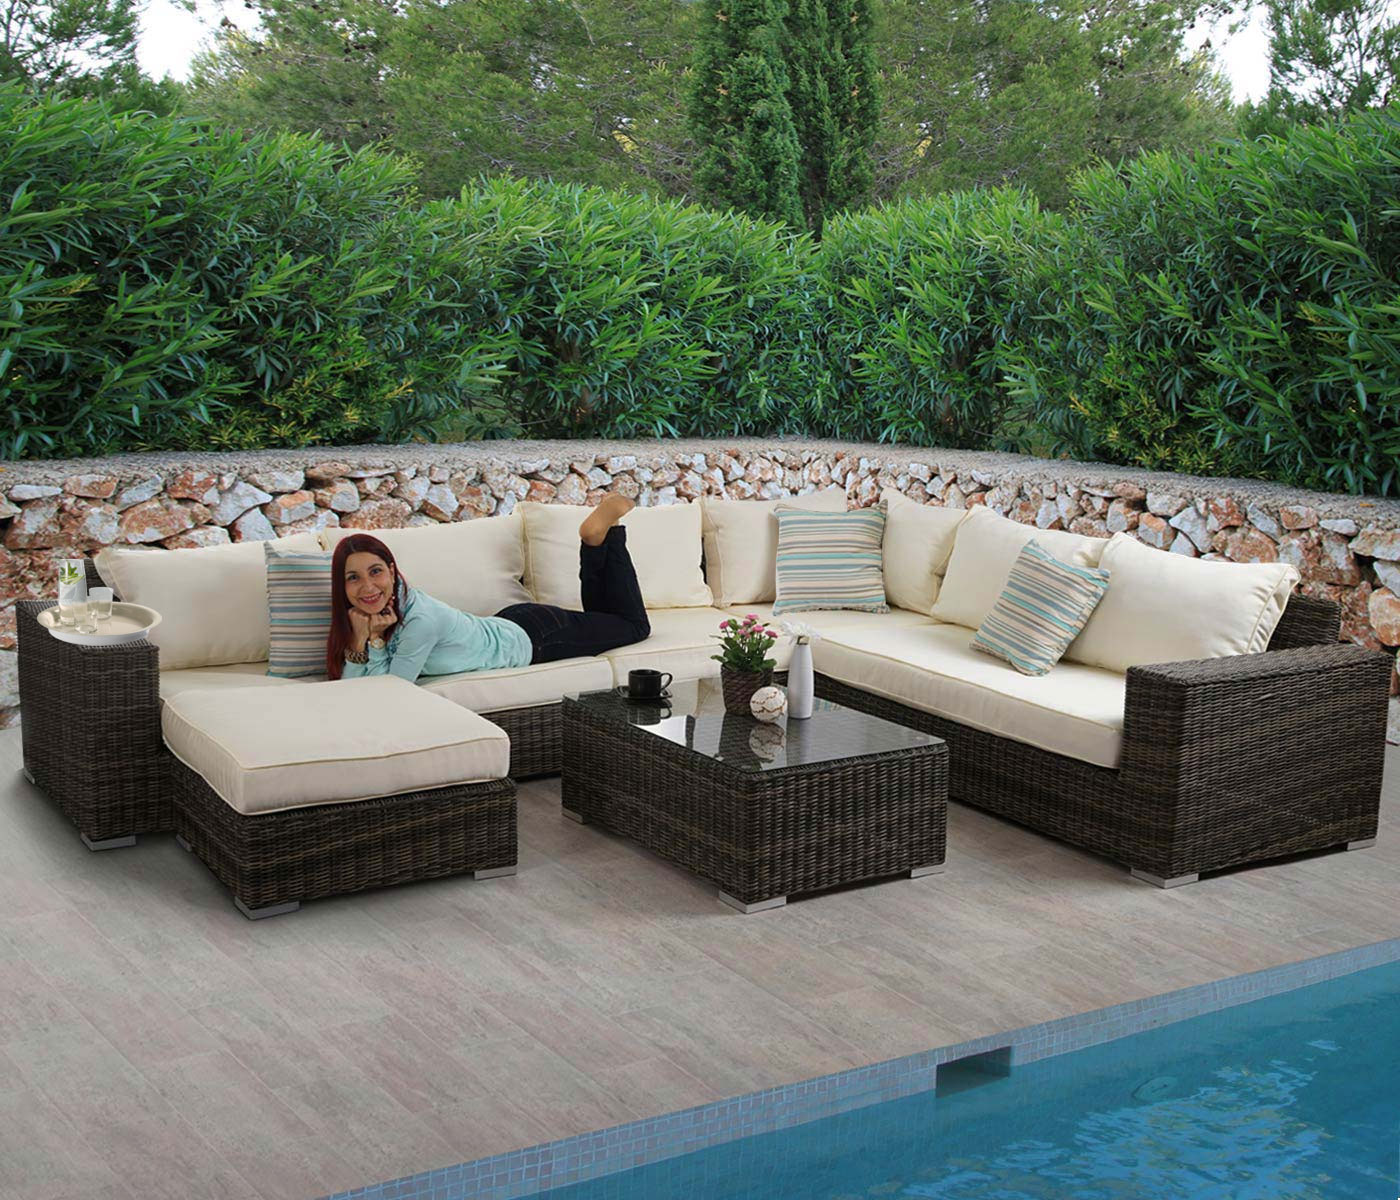 Lounge Set Rattan Luxus Poly-rattan Sofa-garnitur Bilbao, Lounge-set